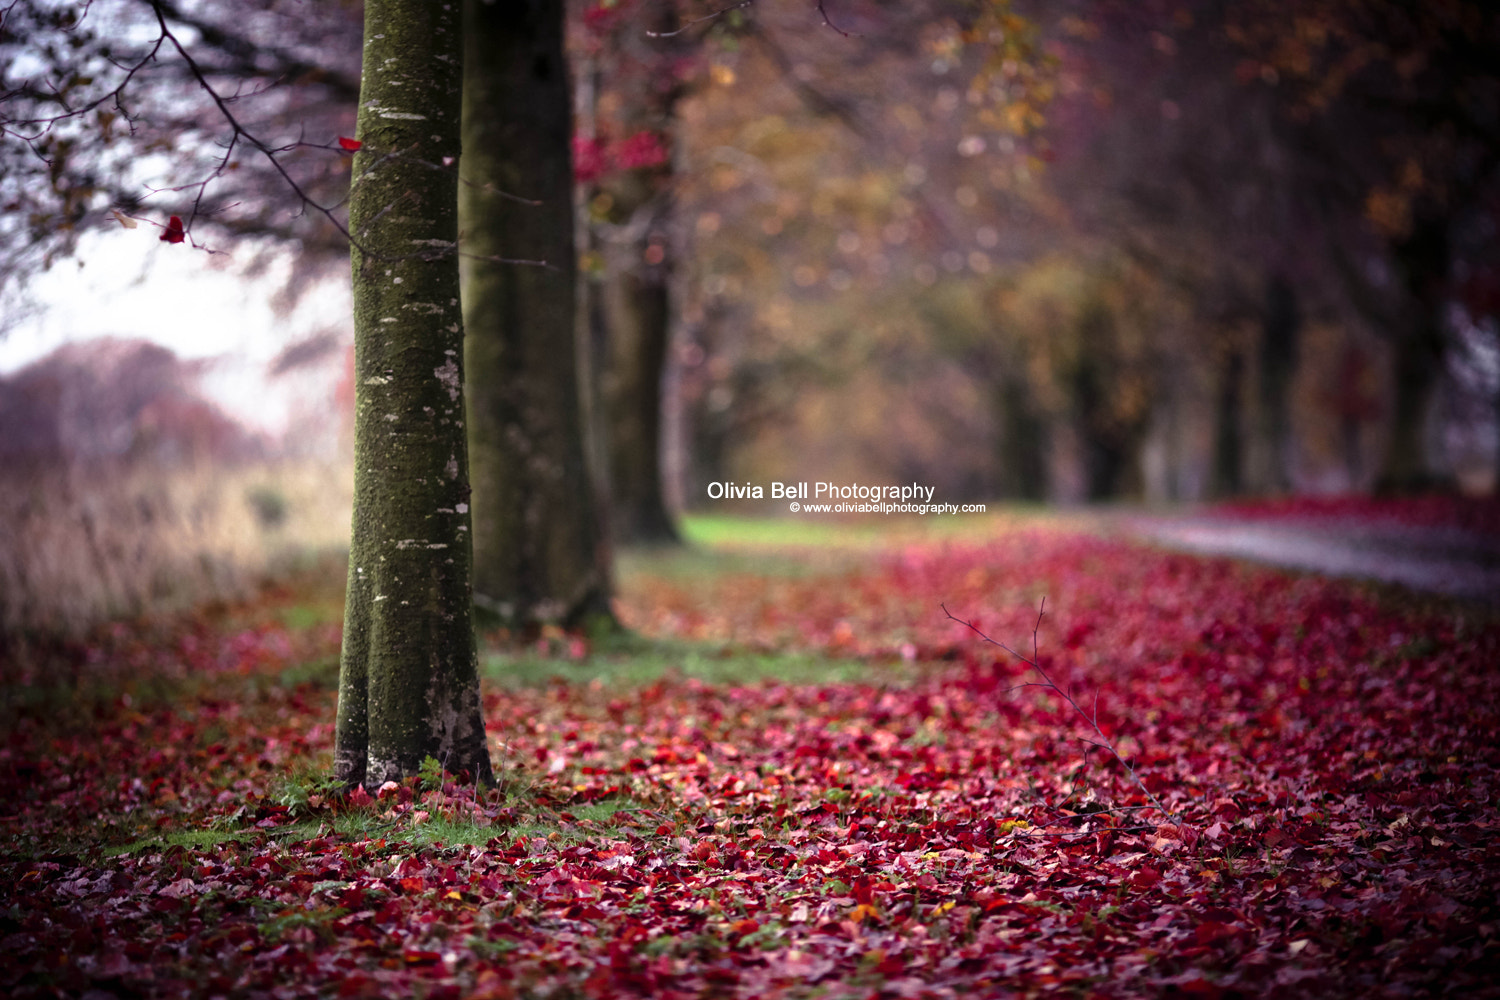 Photograph The Colour of My Heart by Olivia Bell on 500px